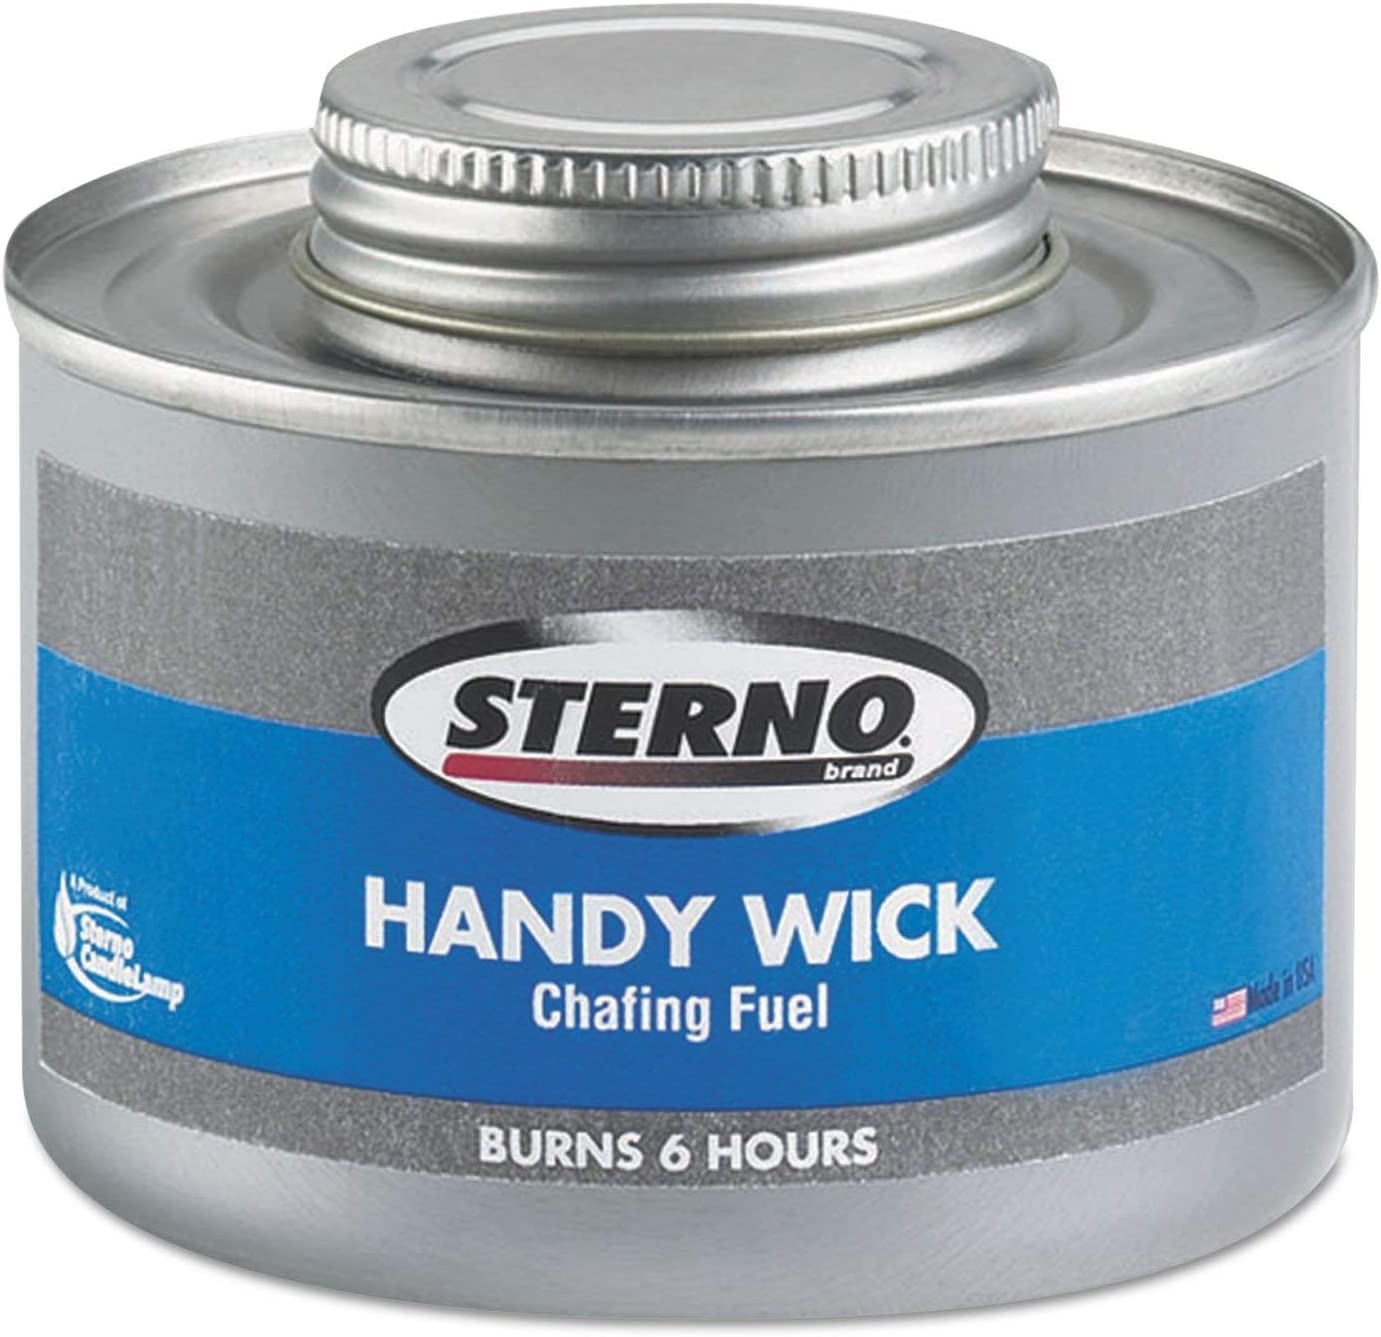 Four-Hour Burn Can Sterno Handy Wick Chafing Fuel Methanol 24//carton